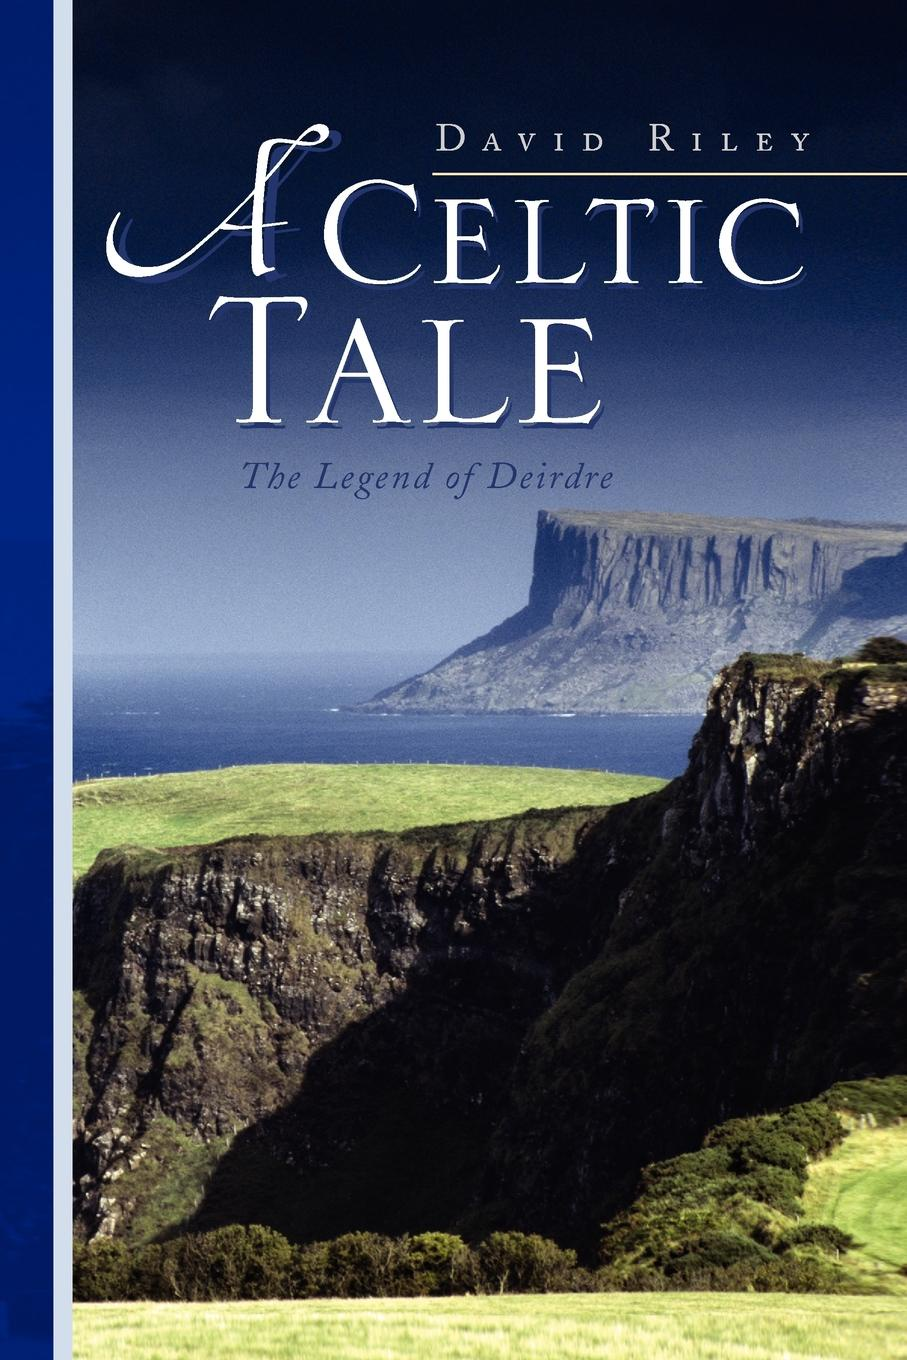 David Riley A Celtic Tale alfred perceval graves a celtic psaltery